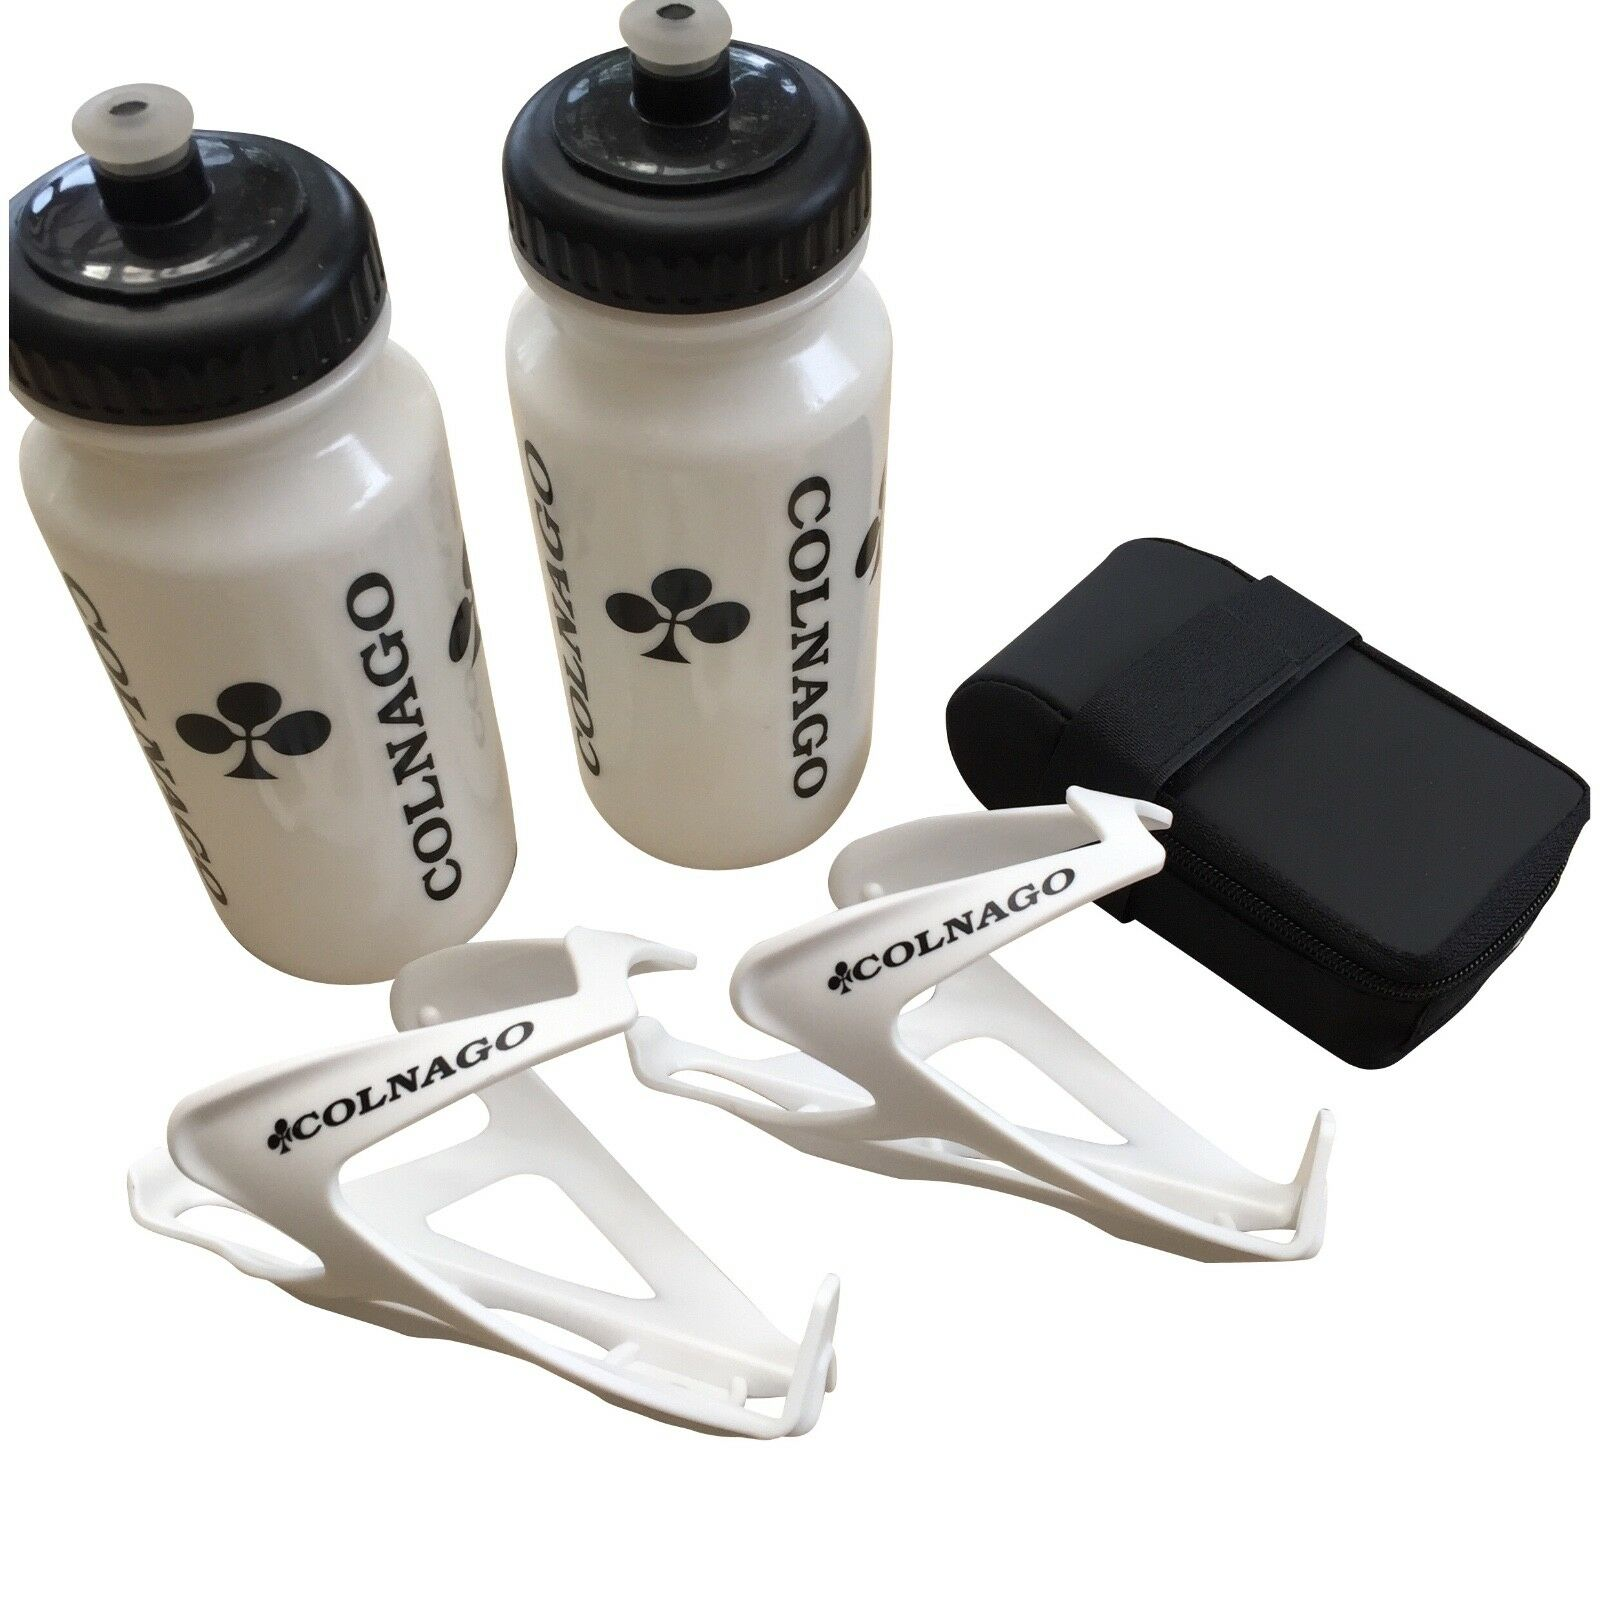 New Colnago Air Combo; Weiß Water Bottles and Weiß Cages + Saddle Tasche